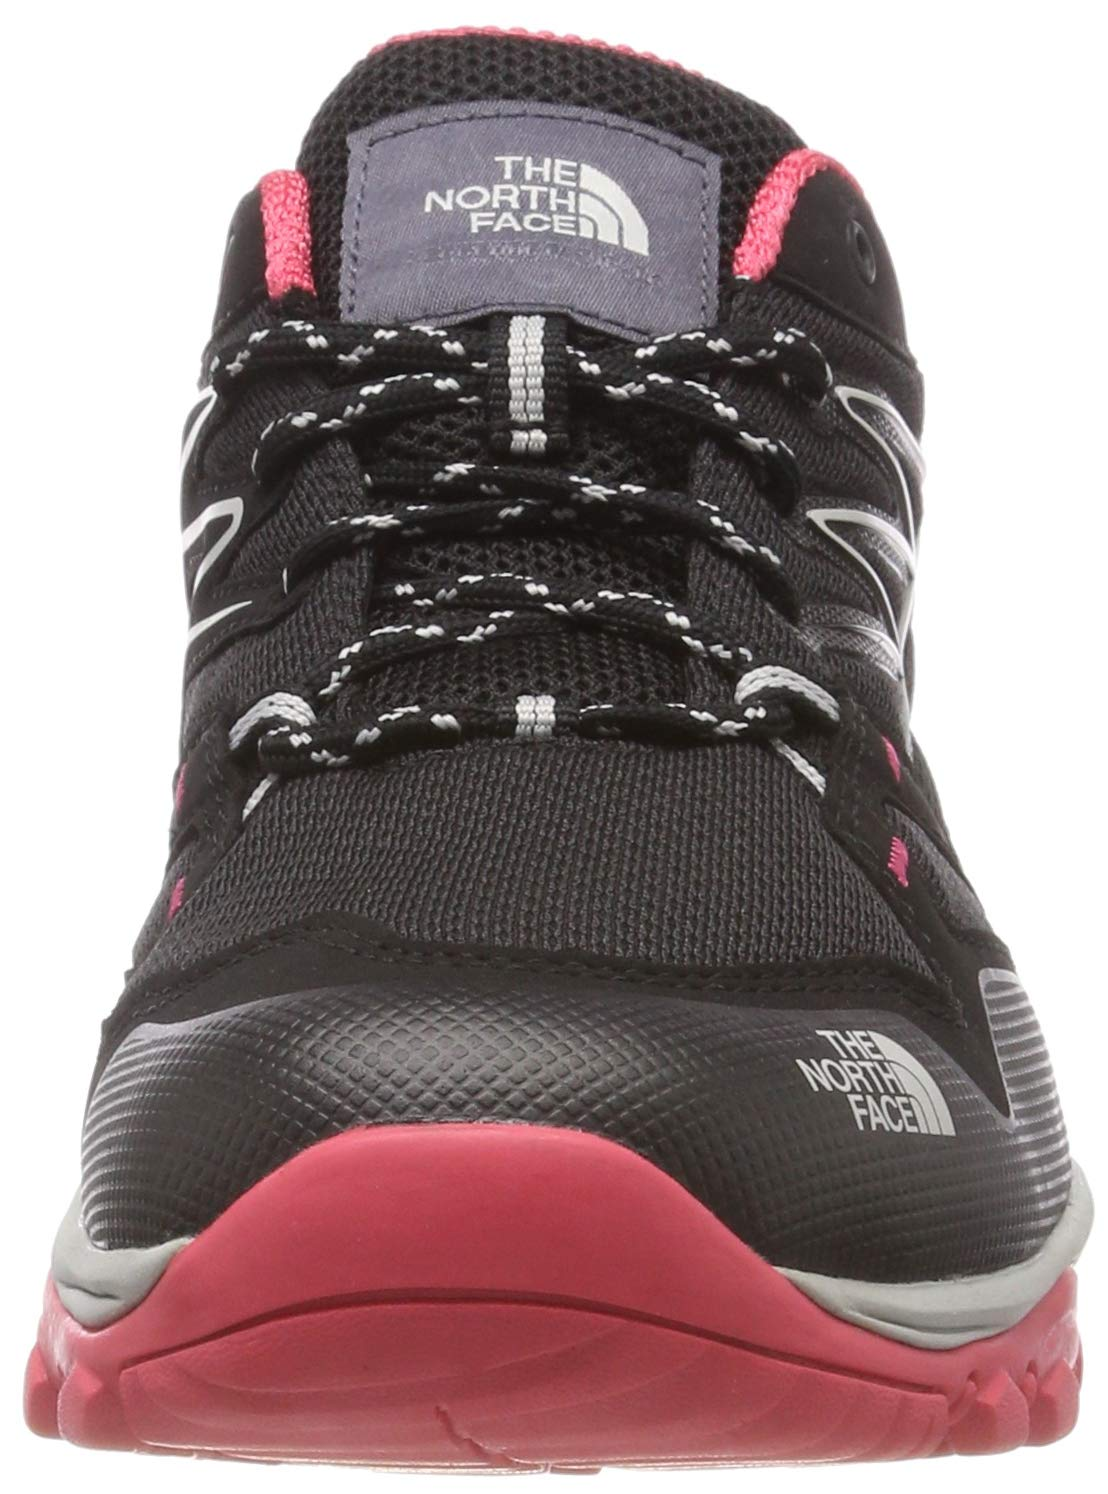 b2d0fbe2a7 THE NORTH FACE Women's Hedgehog Fastpack GTX (EU) Low Rise Hiking Boots